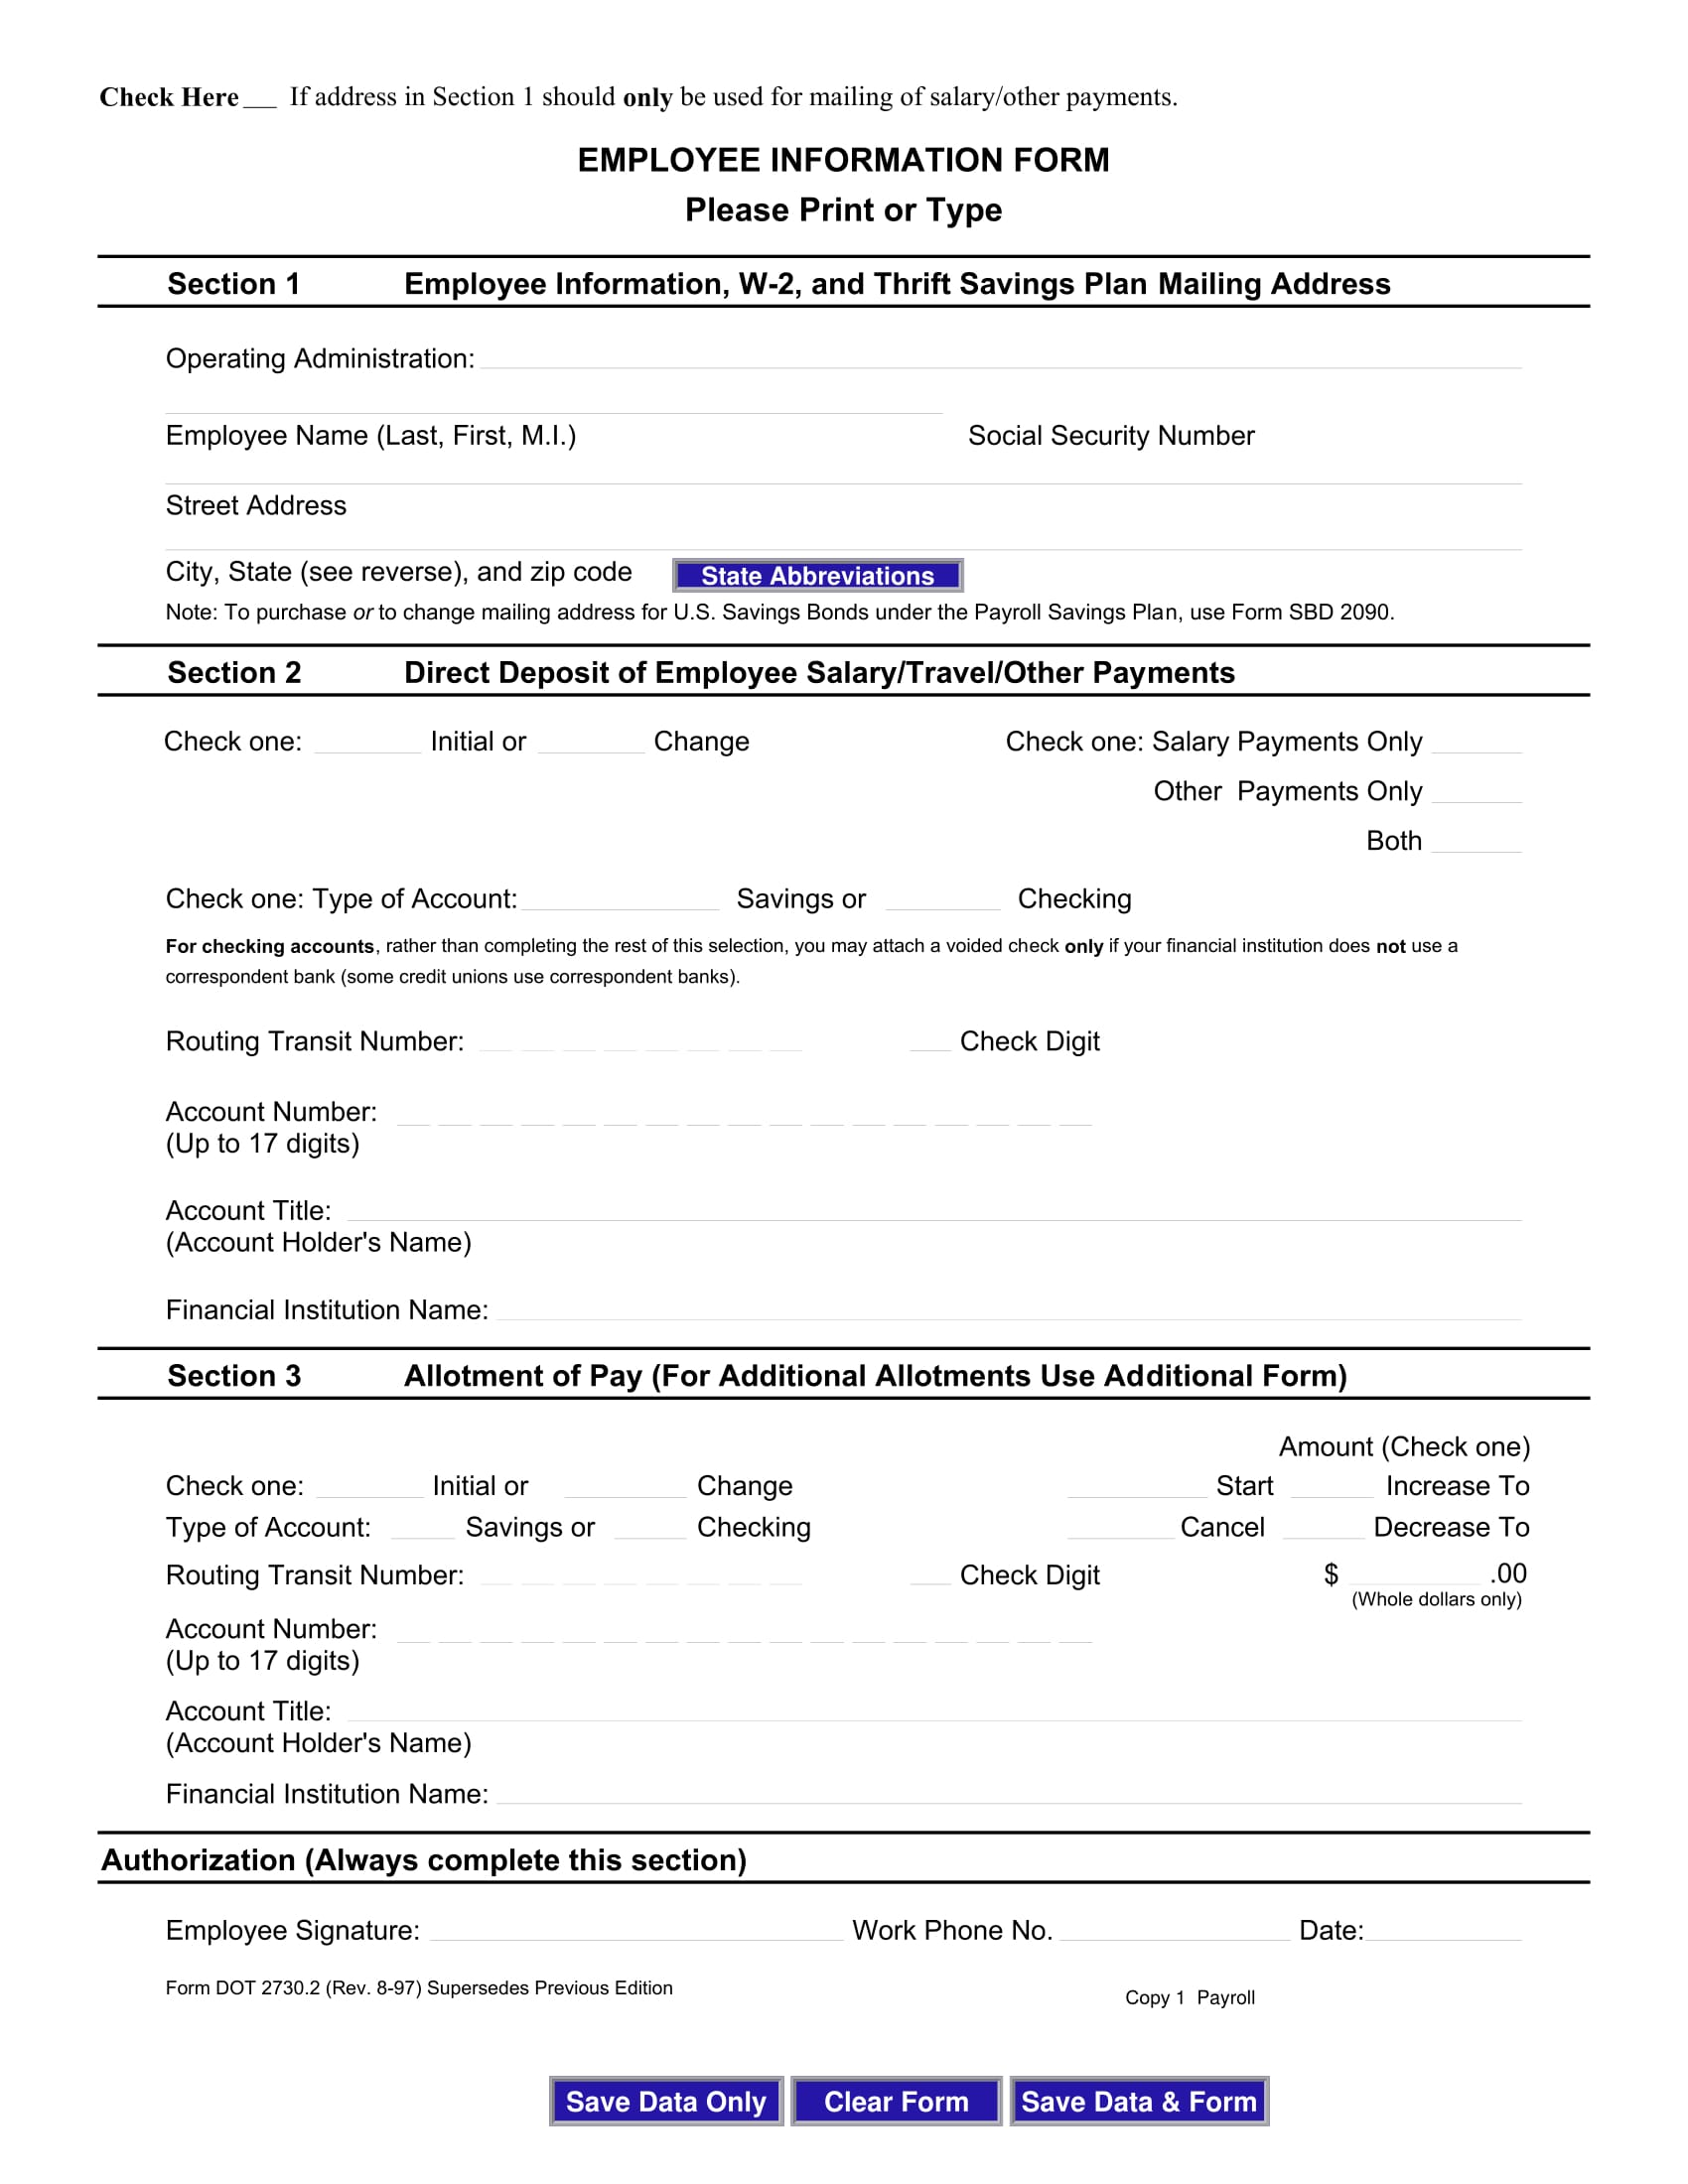 interactive employee information form 1